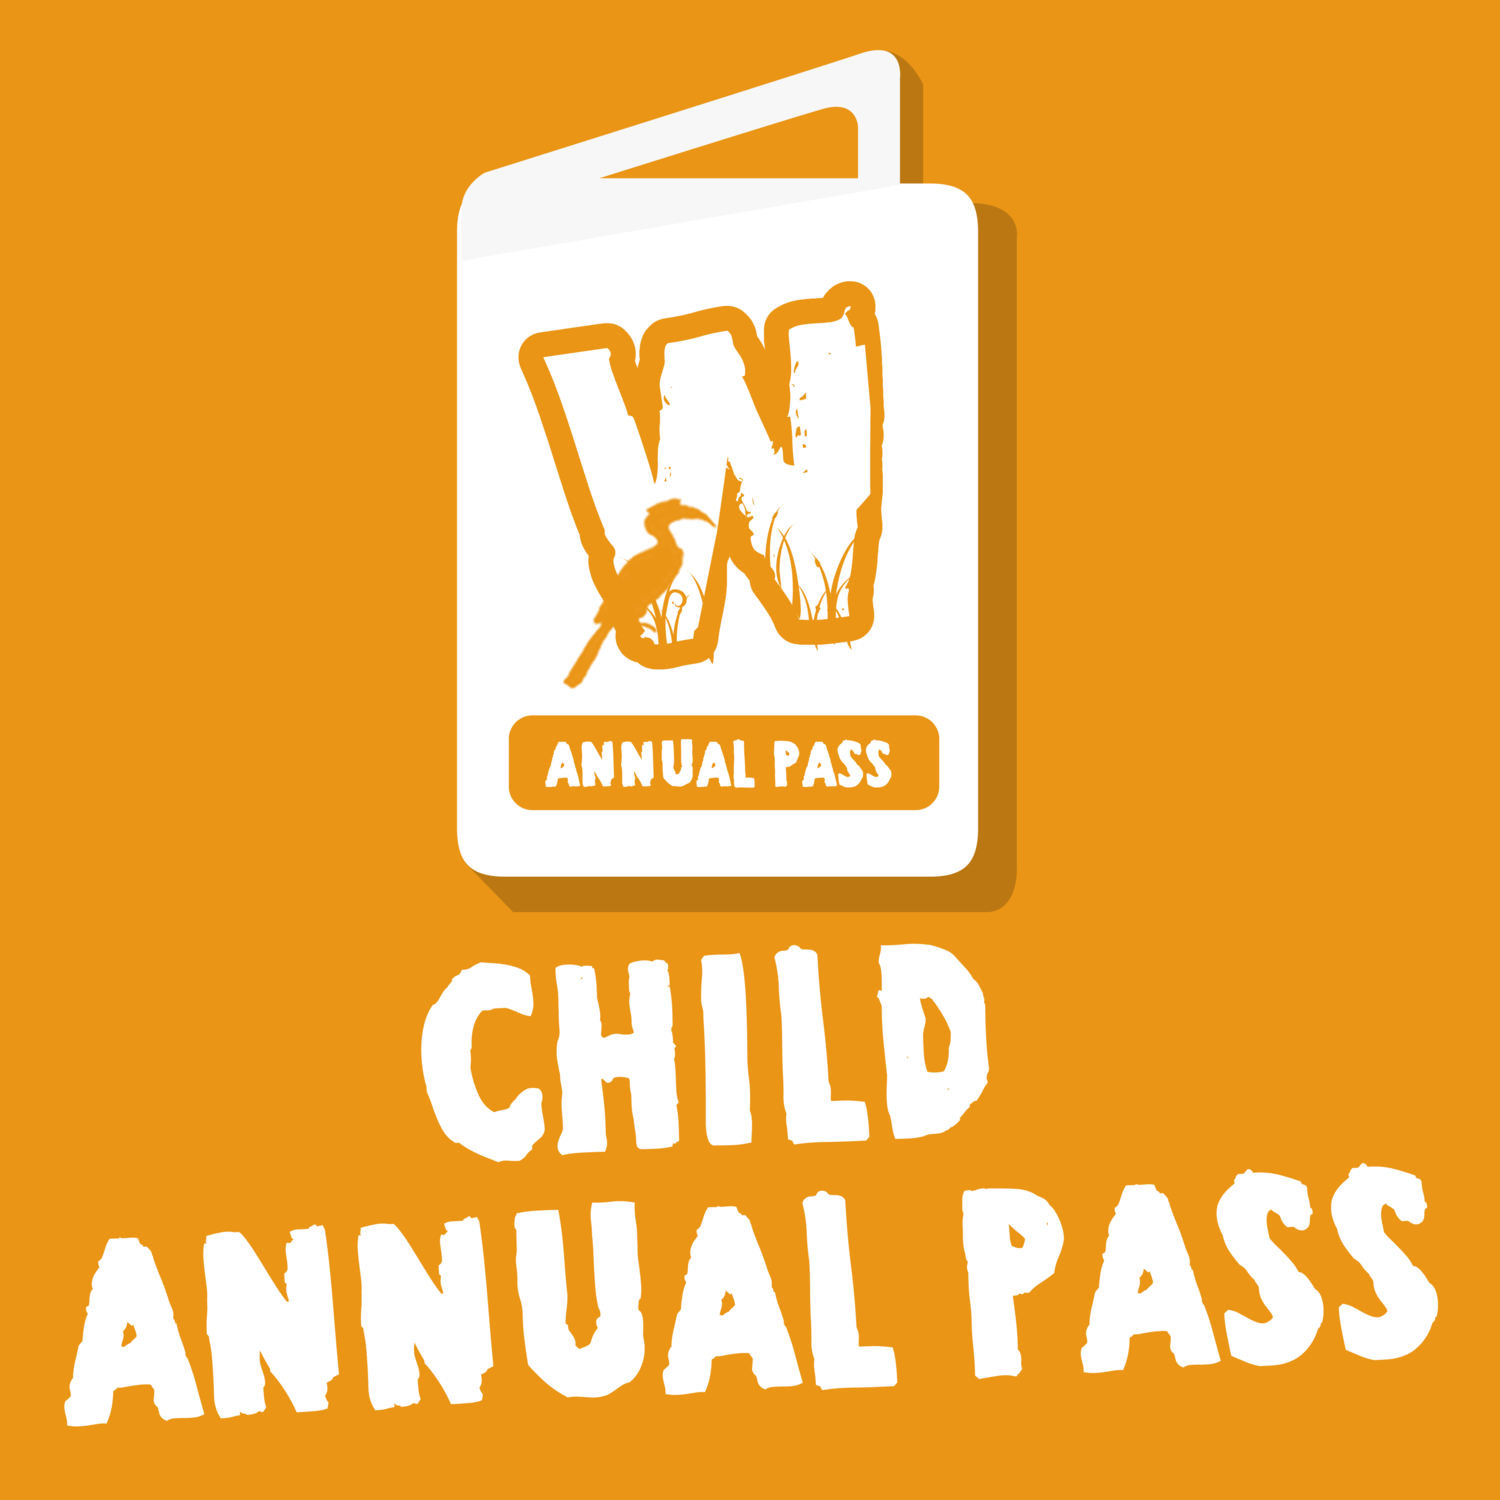 Wild Zoological Park X1 Child ANNUAL PASS